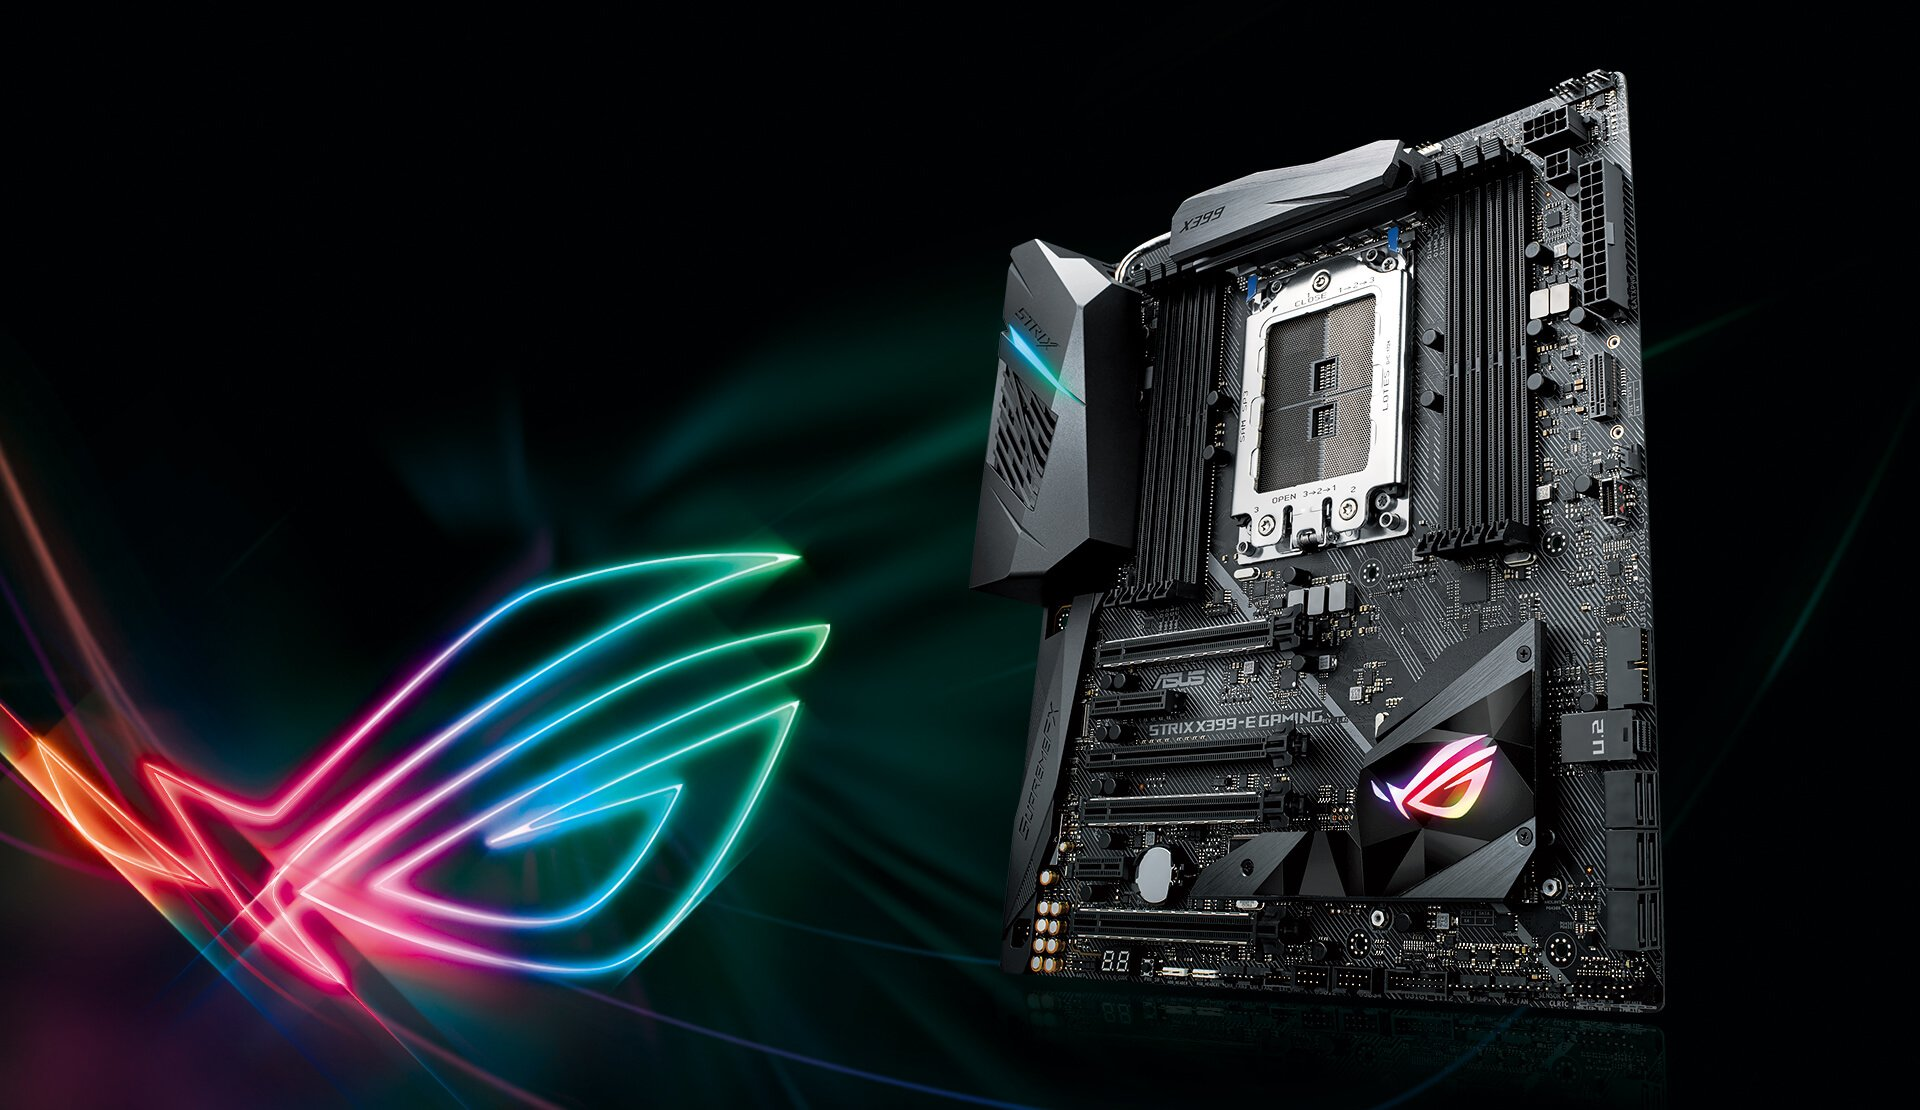 Rog Strix X399 E Gaming Motherboards Asus Usa Adding A Second Light To Existing 3way Circuitswitchswitchload2 Katana While Standard And Addressable Headers Take System Illumination The Next Level With Ryzen Threadripper Cpus Ready For Streaming